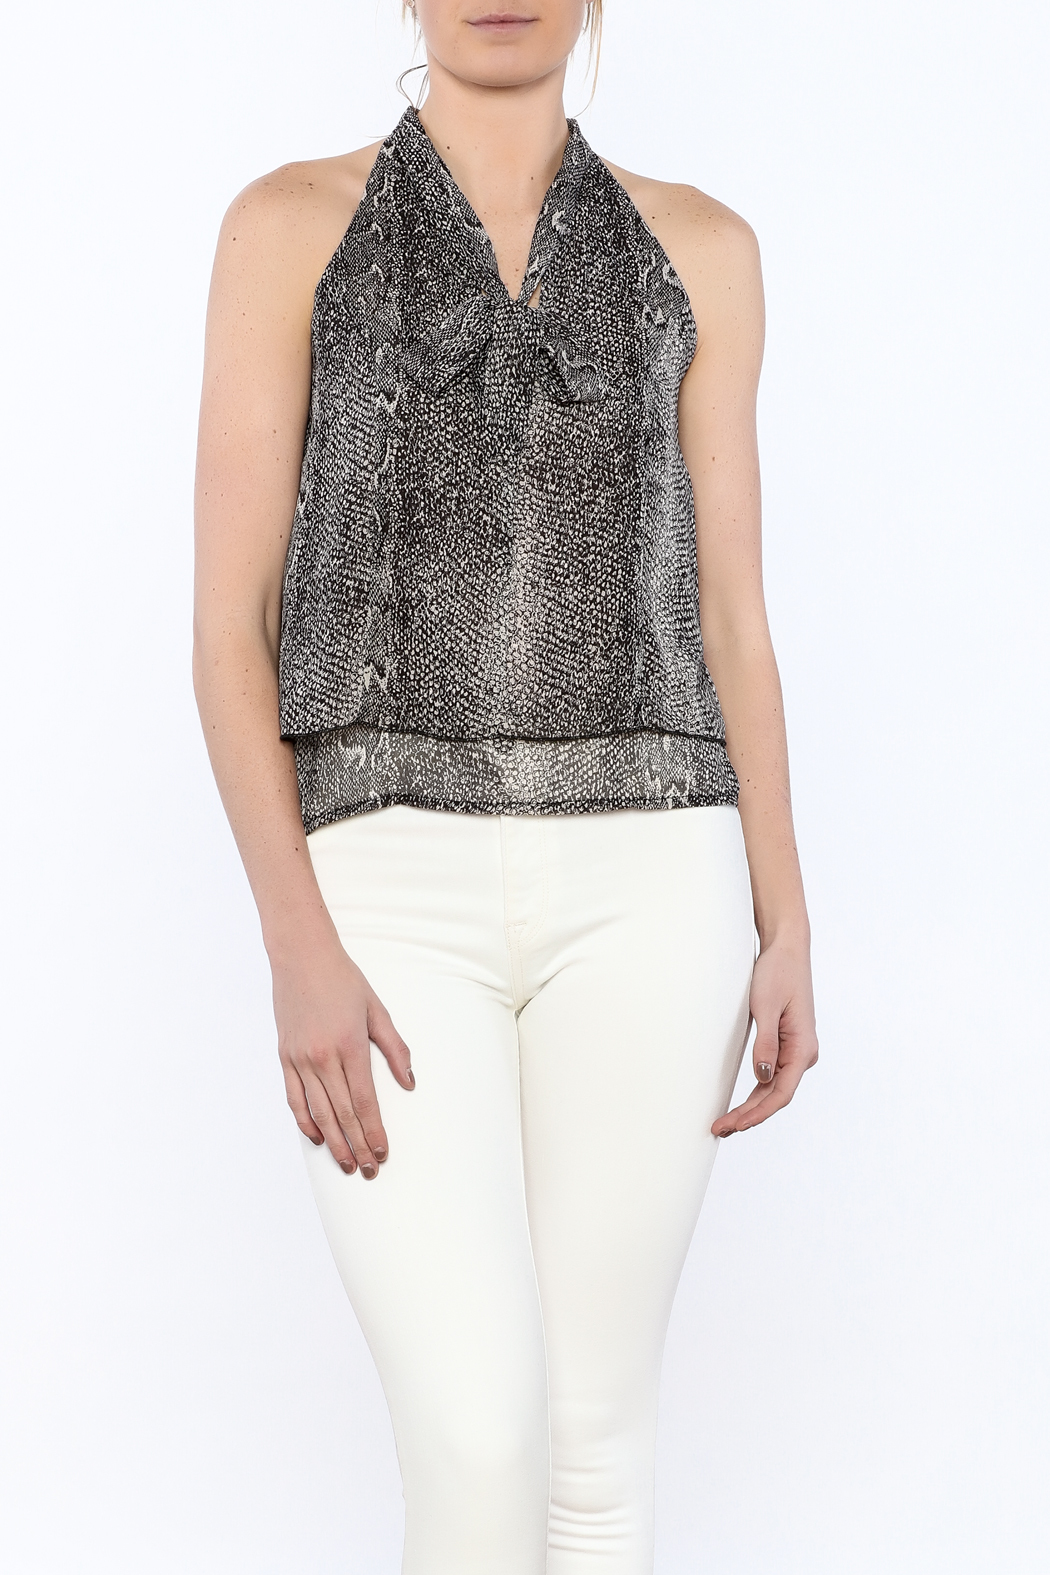 bece22d75694b4 Bishop + Young Snakeskin Sleeveless Blouse from New York by Luna ...